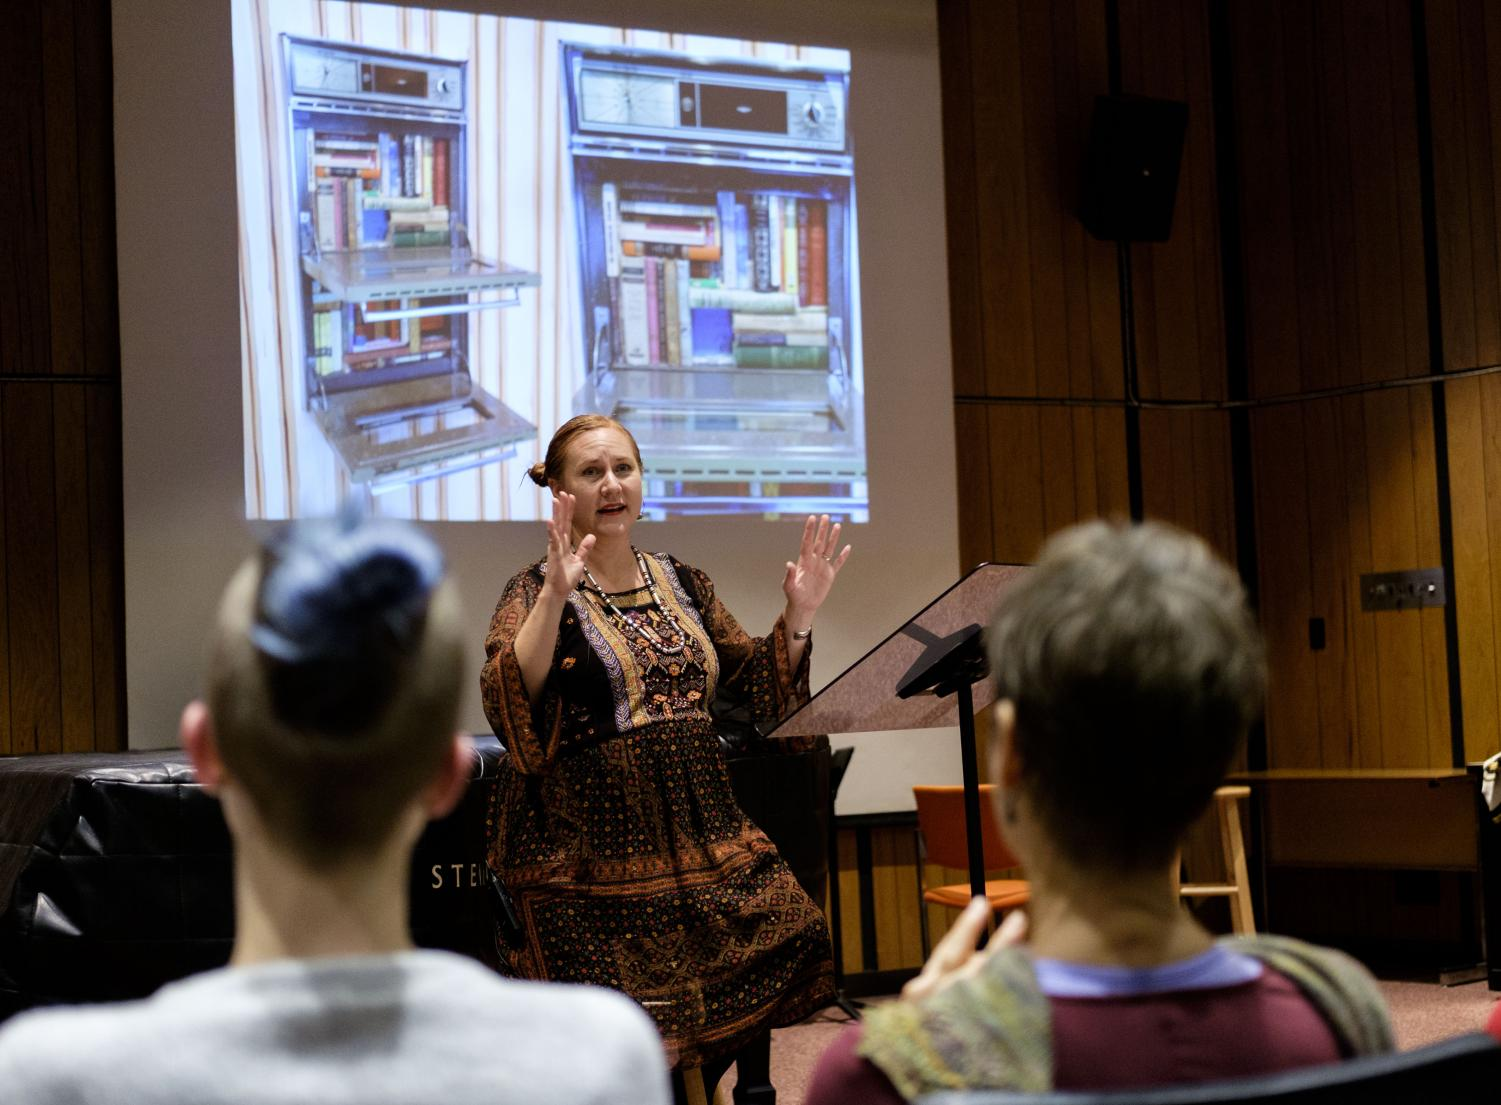 CSU Fullerton professor Rebecca Campbell talks about her artistic process in the FCC Recital Hall on Friday, Nov. 3, 2017.